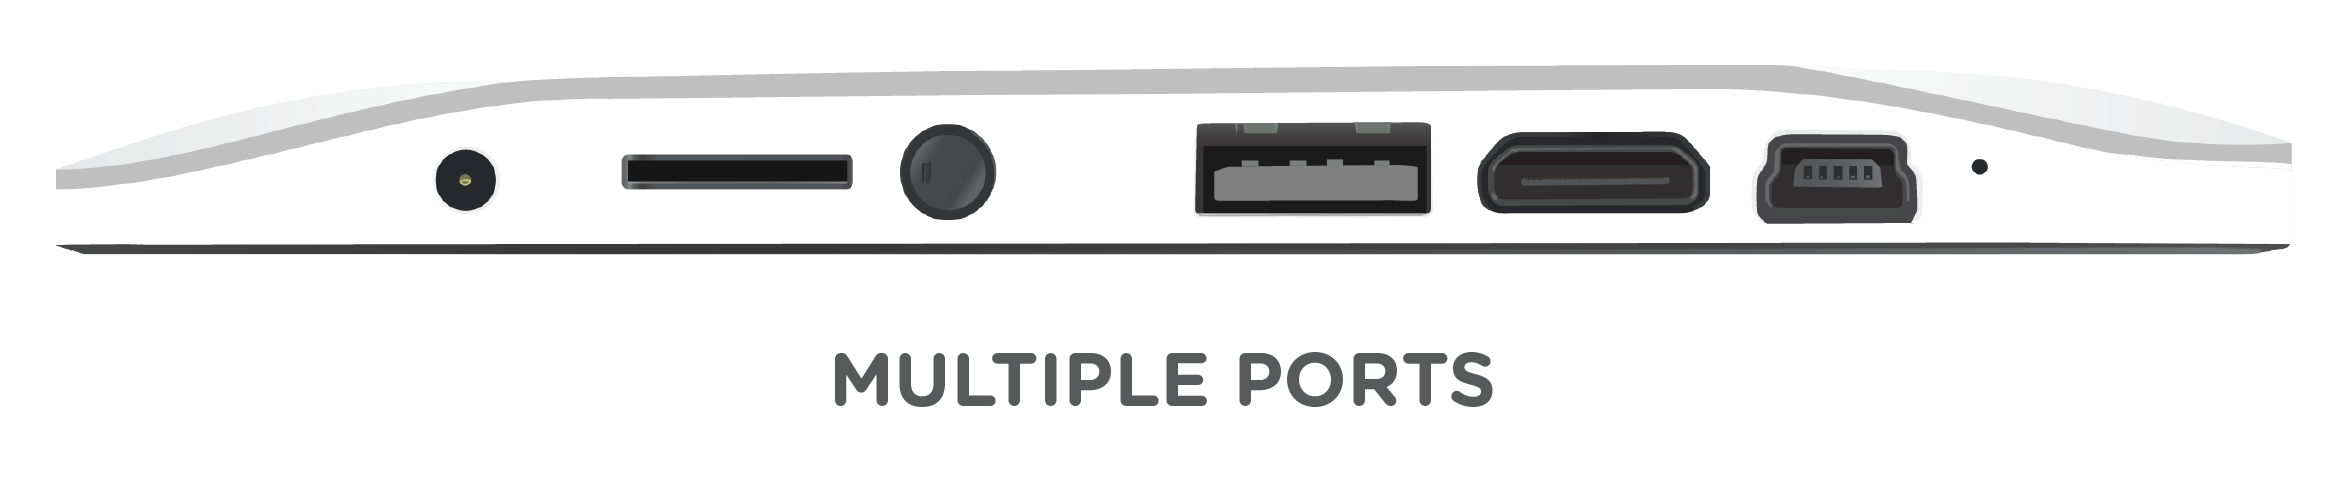 multiple ports-25